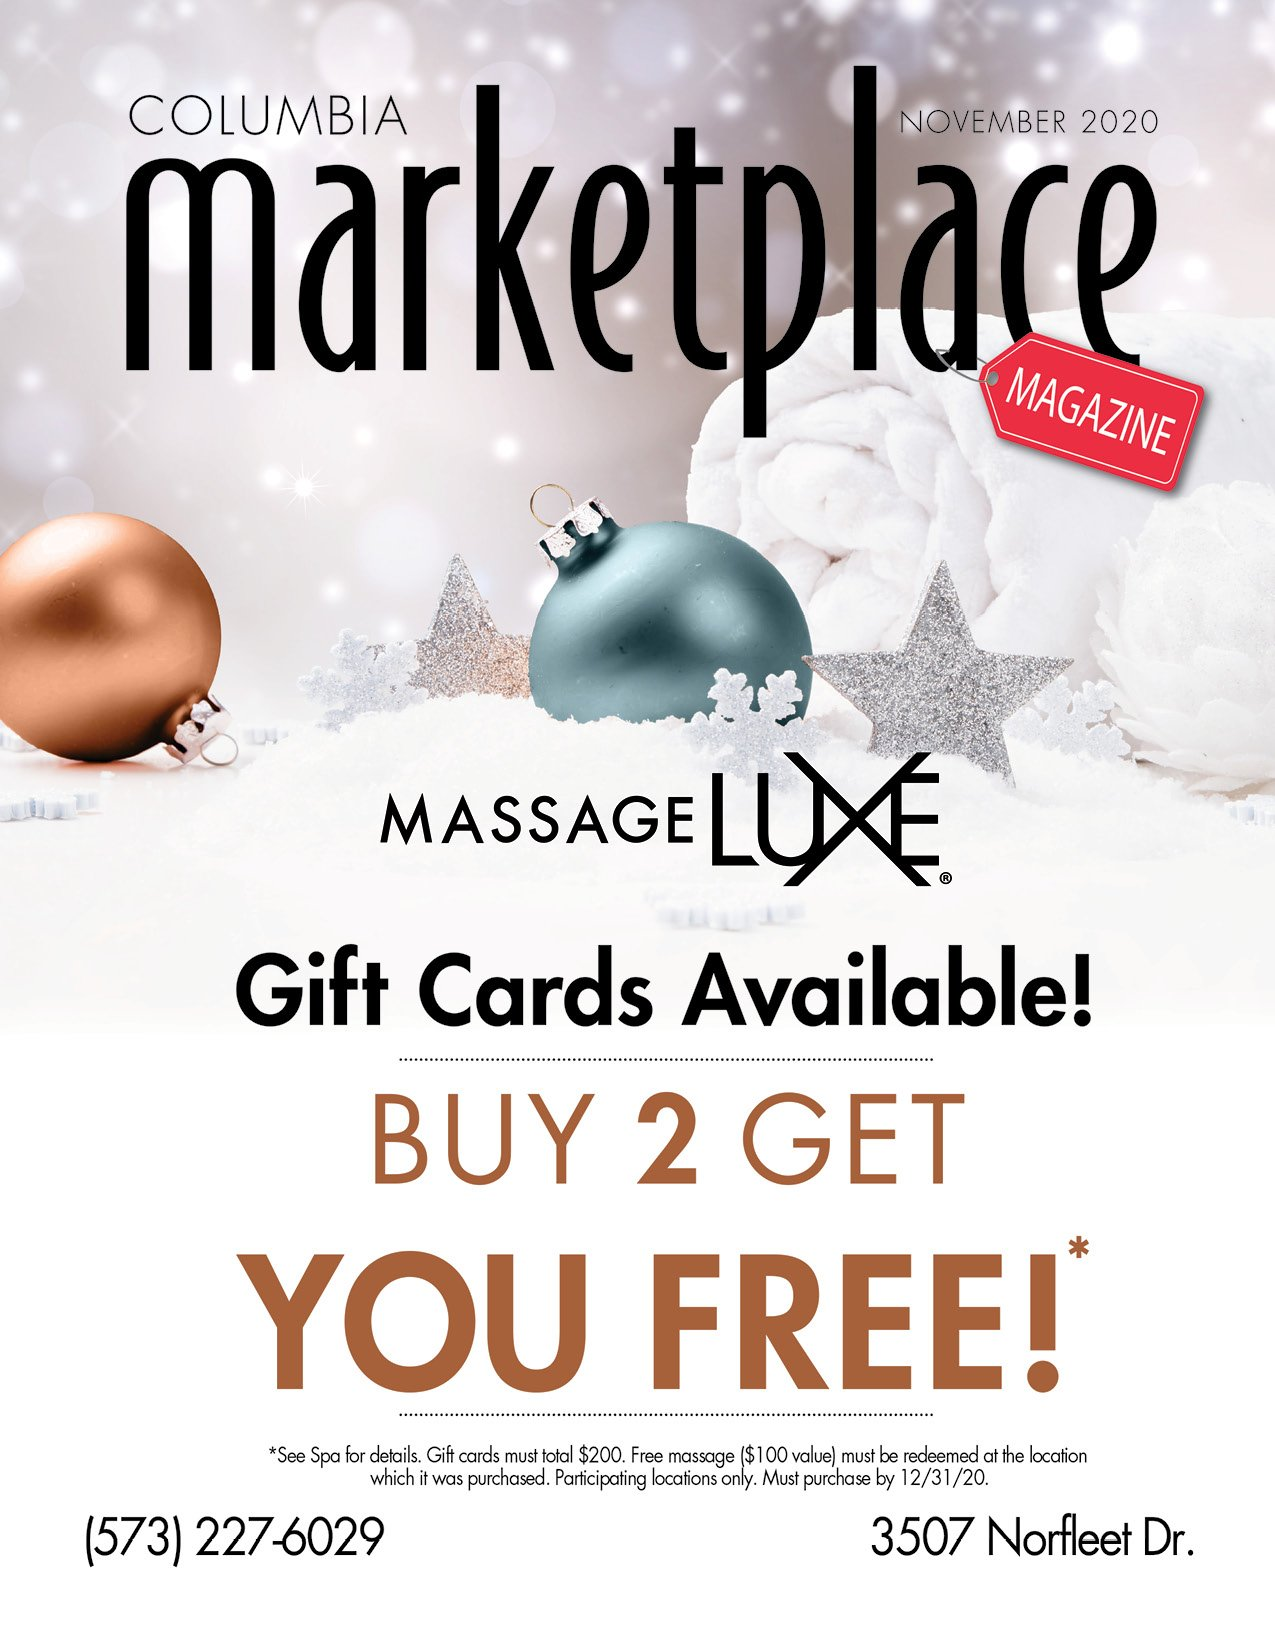 Marketplace Magazine by Modern Media Concepts November 2020 Edition Featuring Massage LUXE Columbia Missouri 1